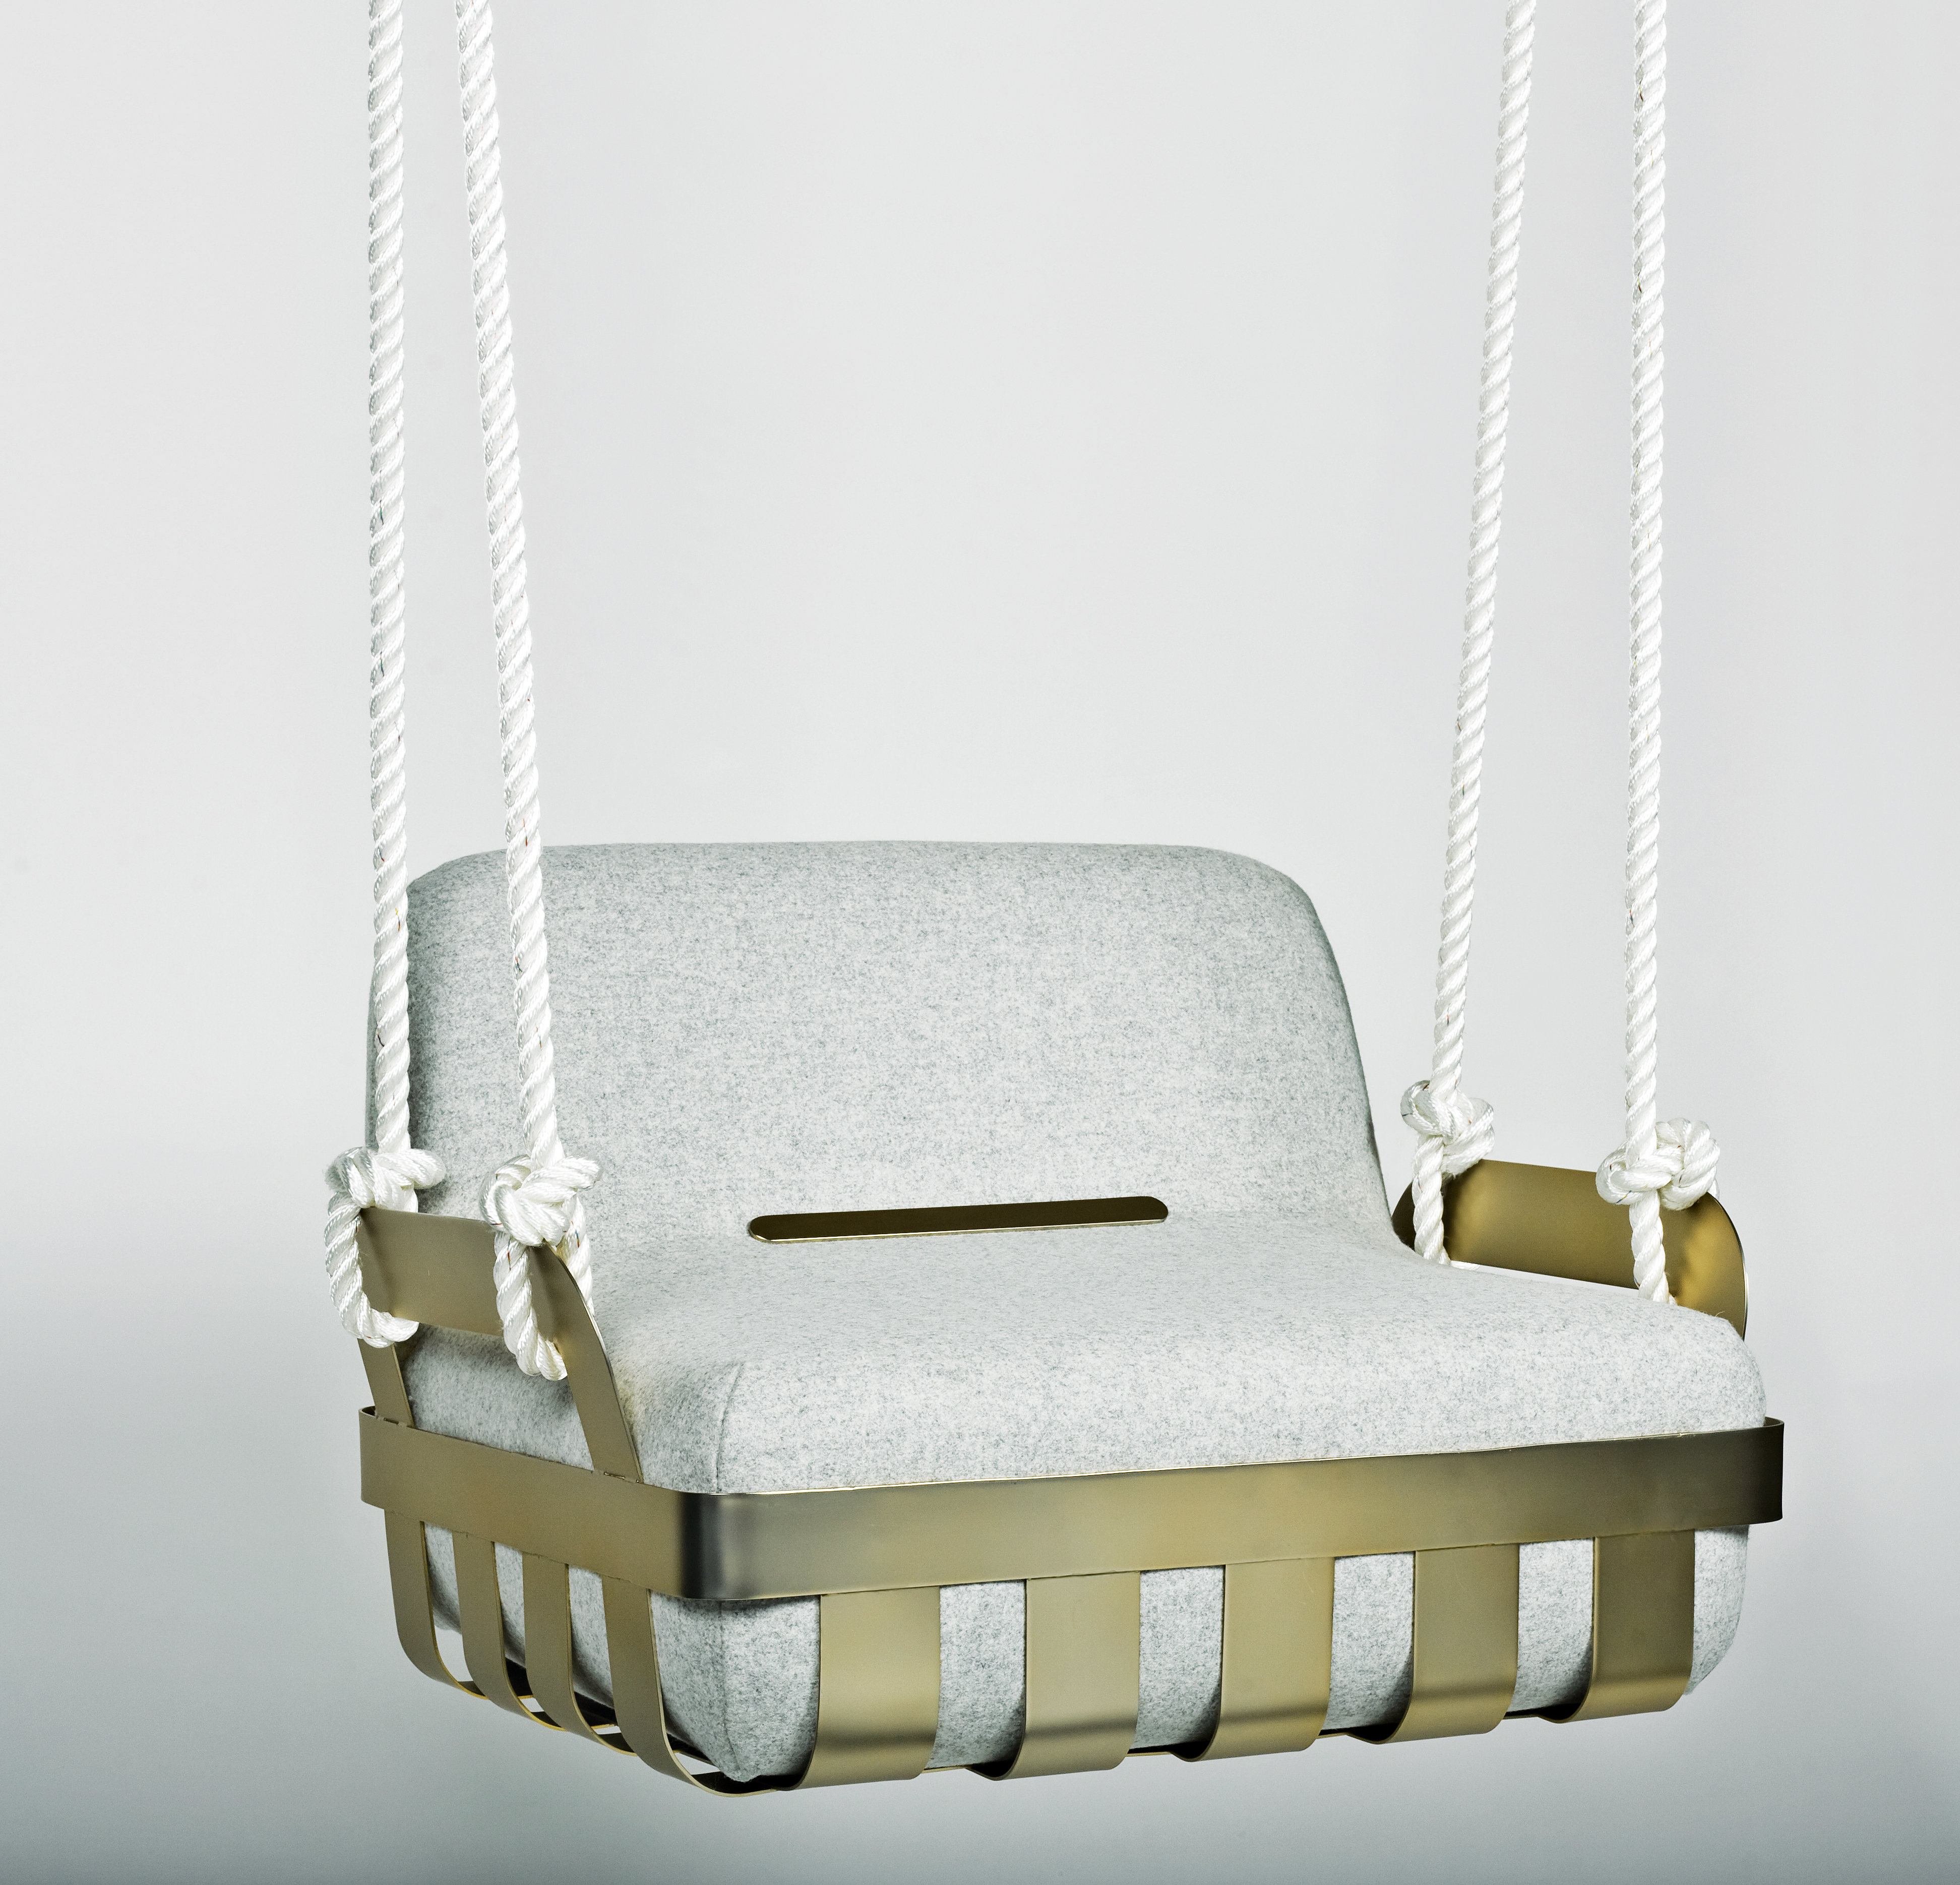 Modern swinging chair.